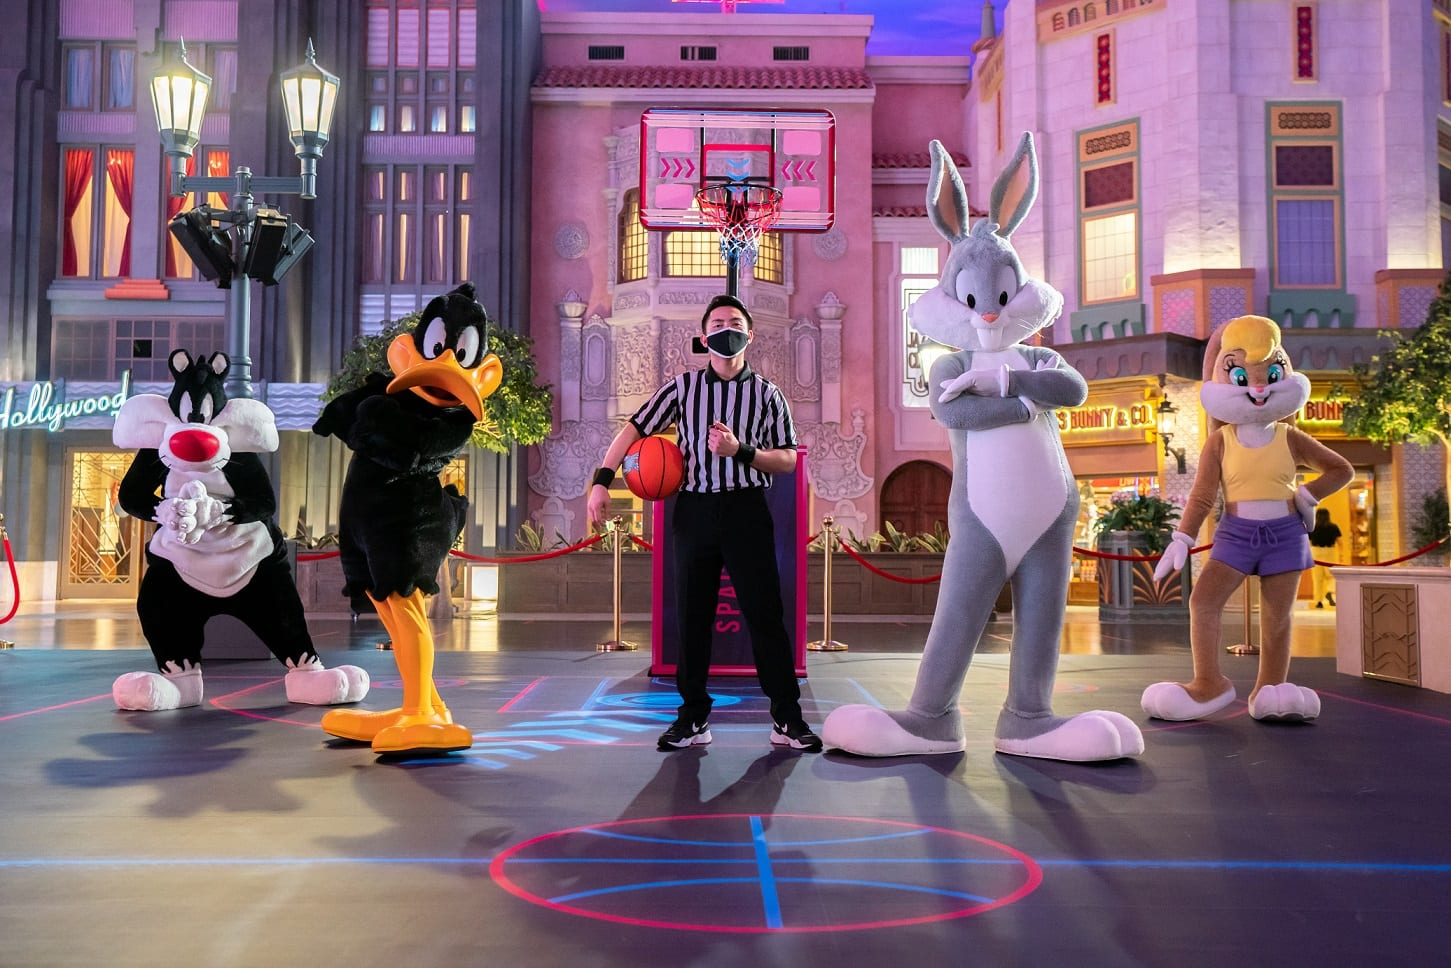 How To Watch 'Space Jam: A New Legacy' Online?